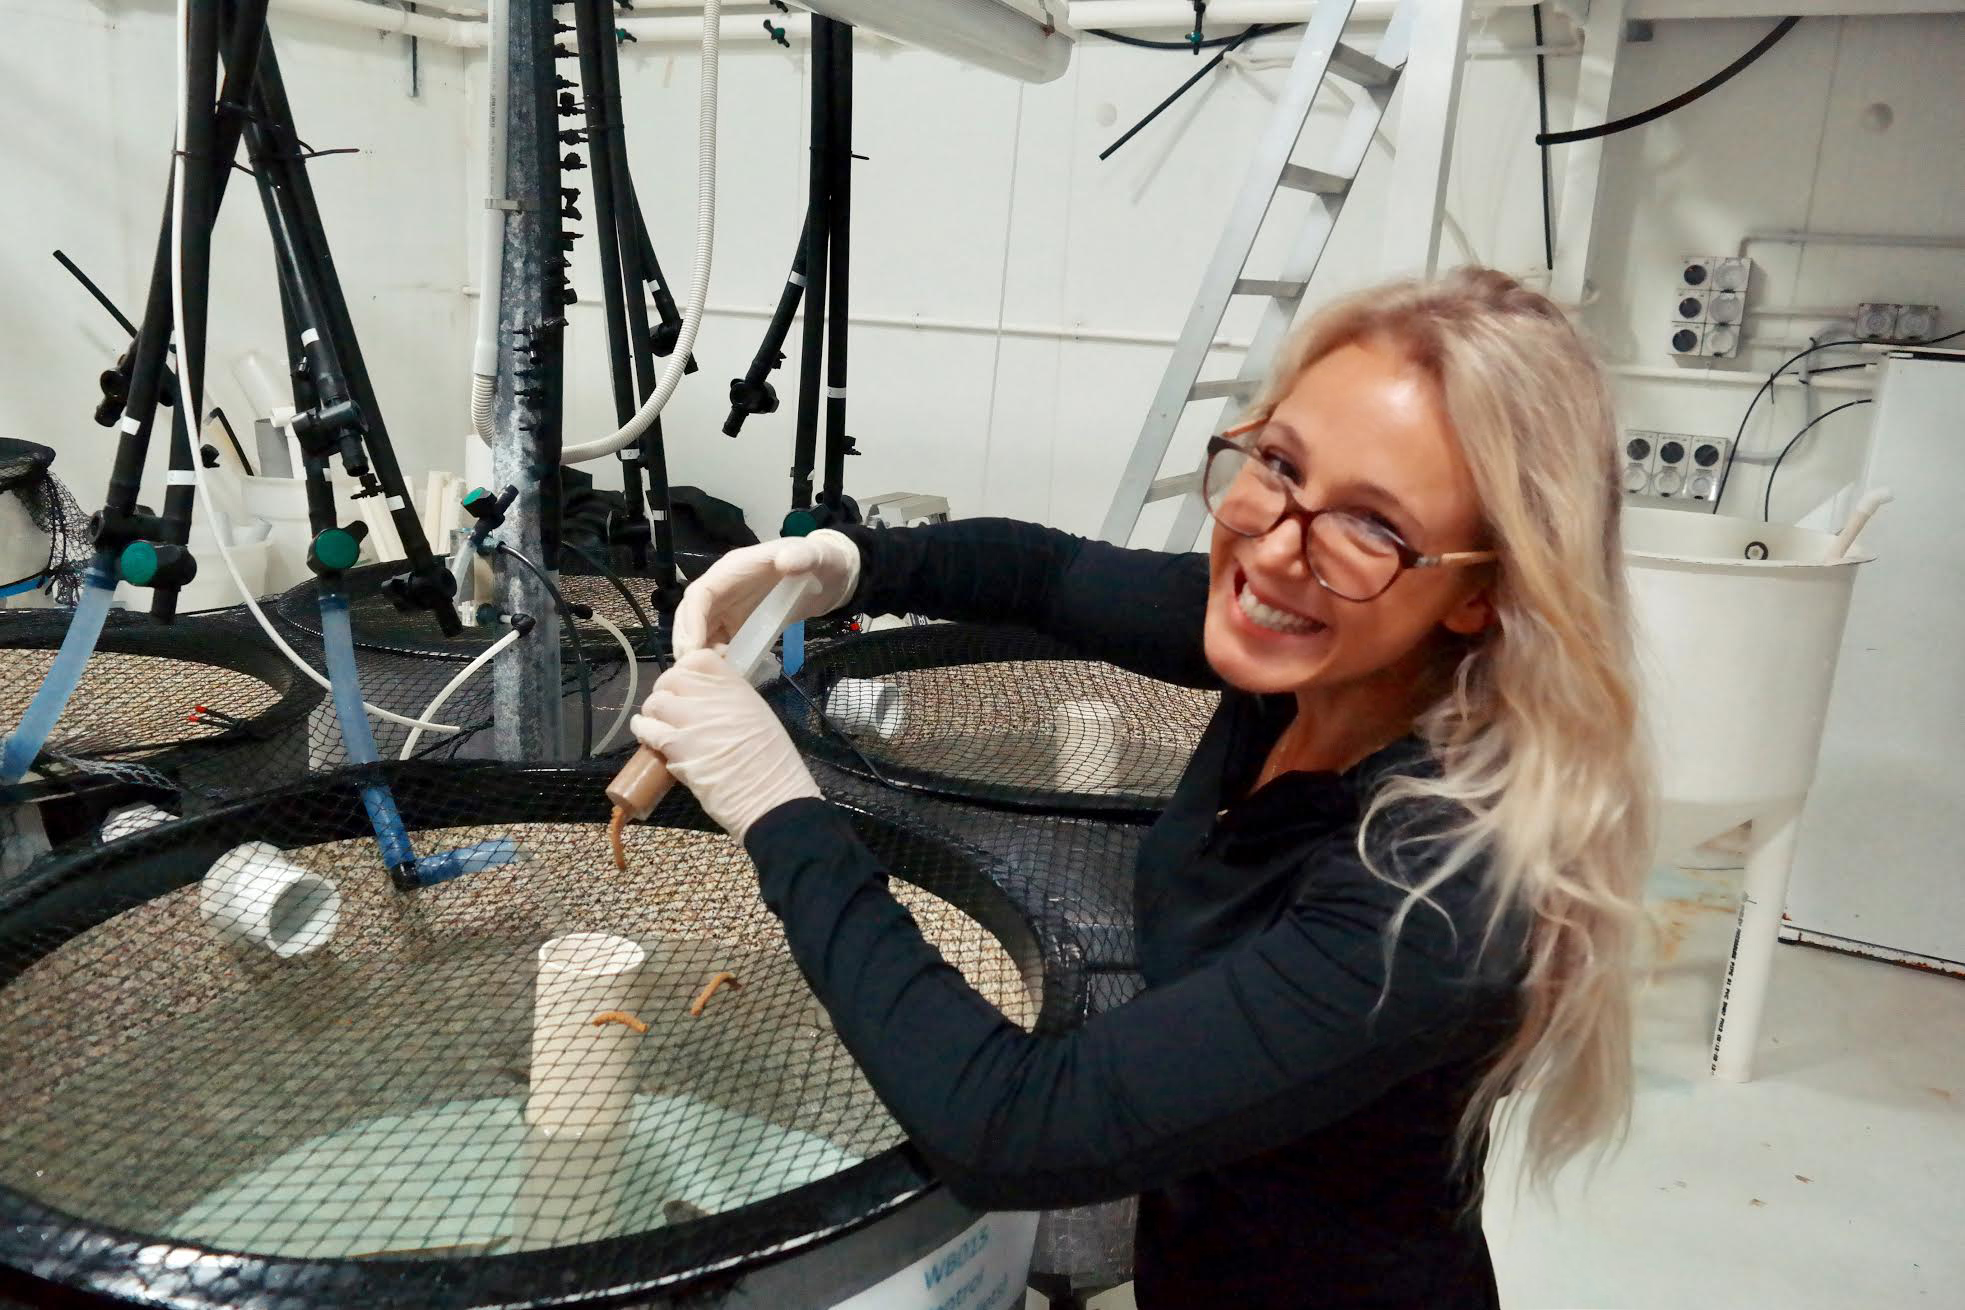 Fish snack on microplastics